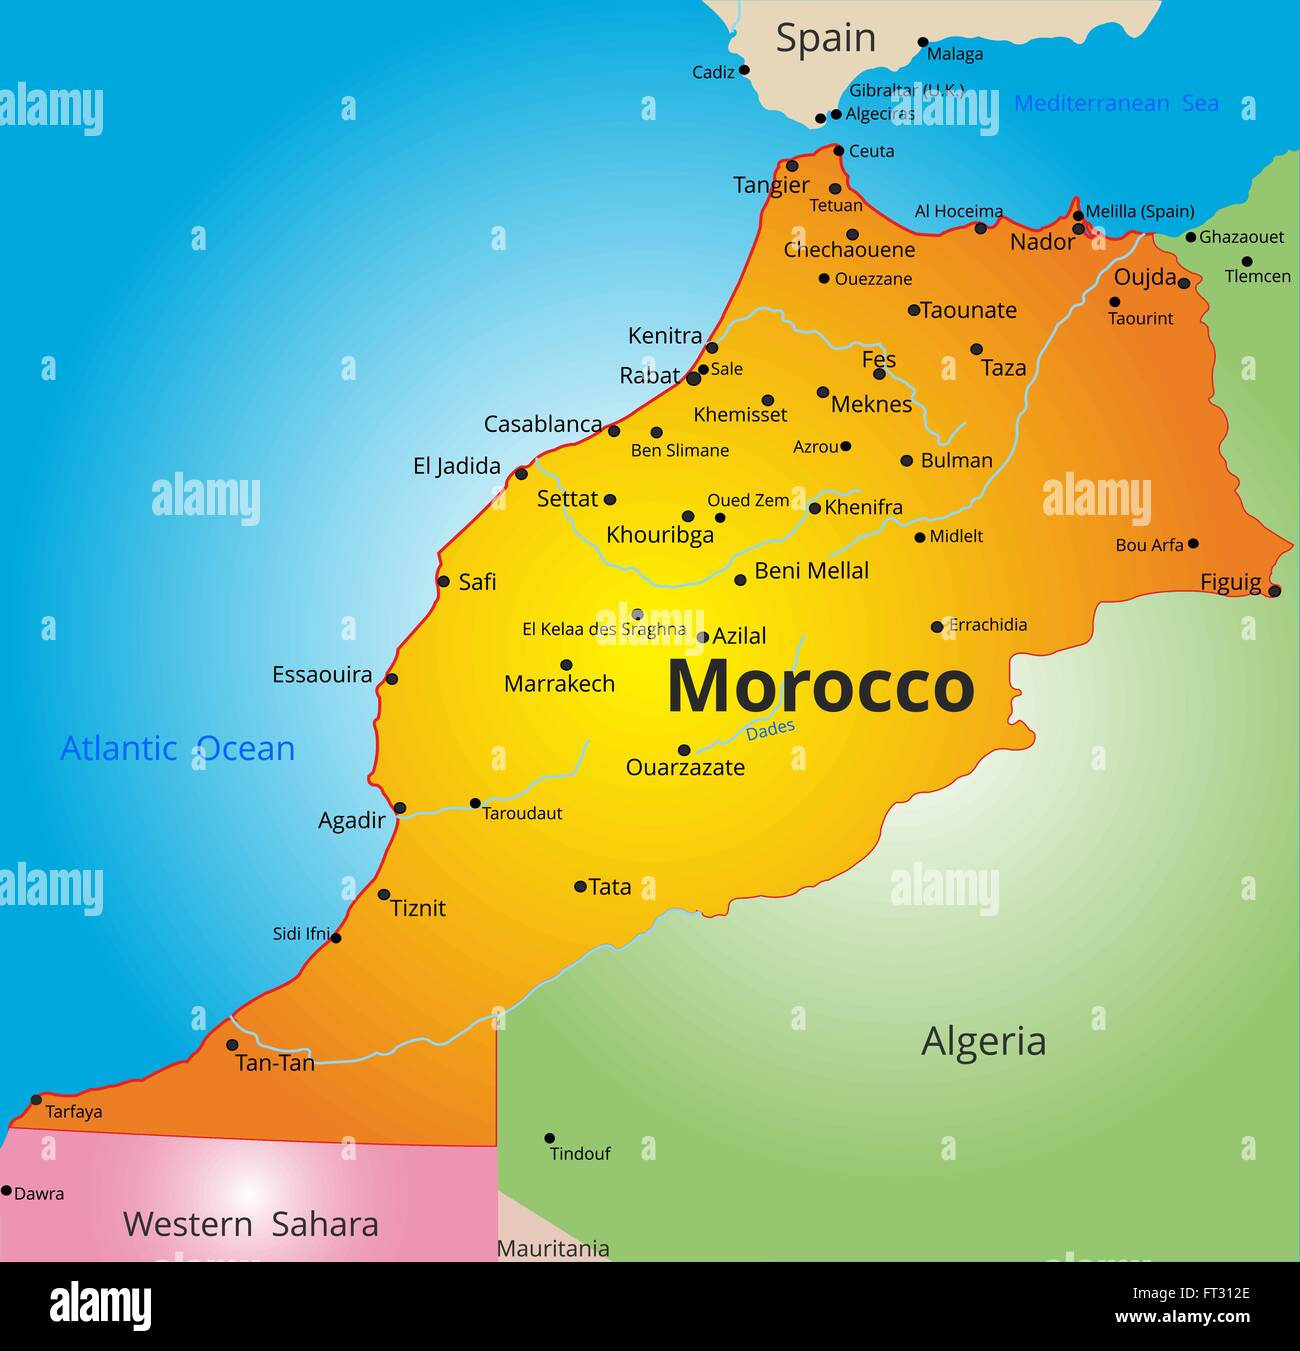 Color map of morocco country stock vector art illustration vector color map of morocco country gumiabroncs Image collections